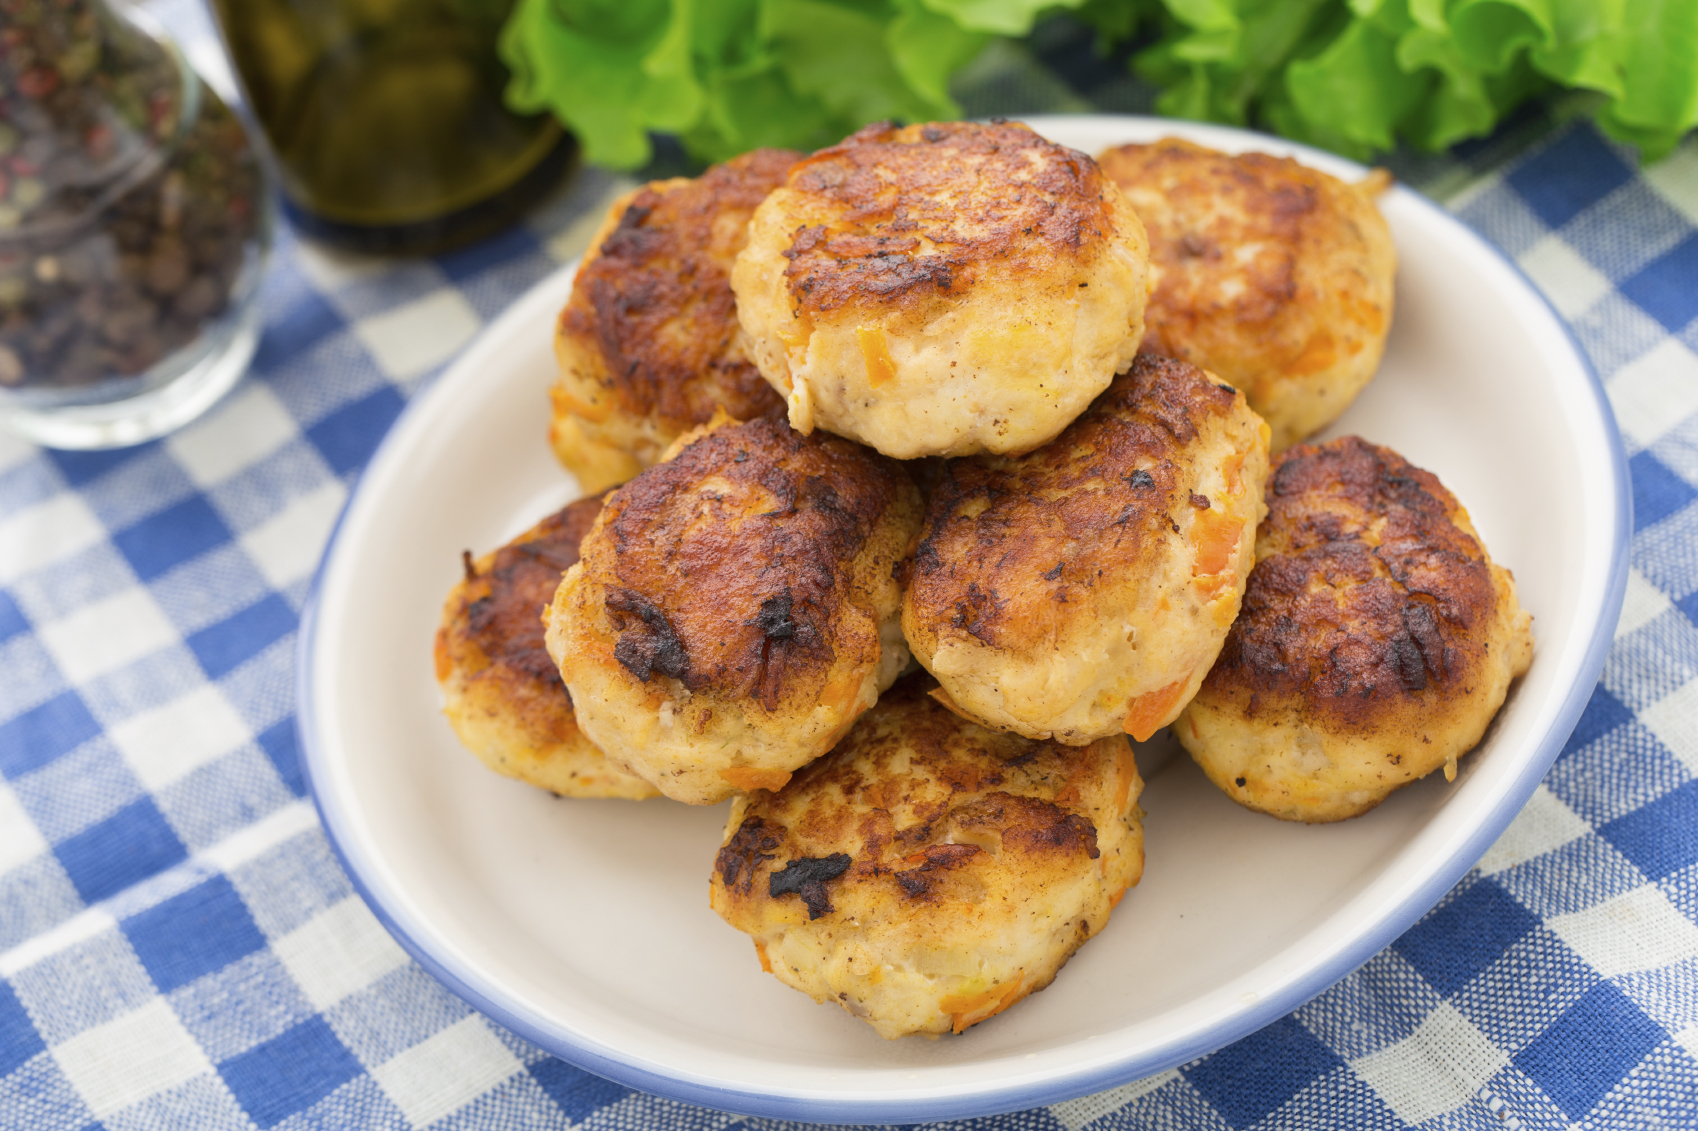 Chicken and apple patties